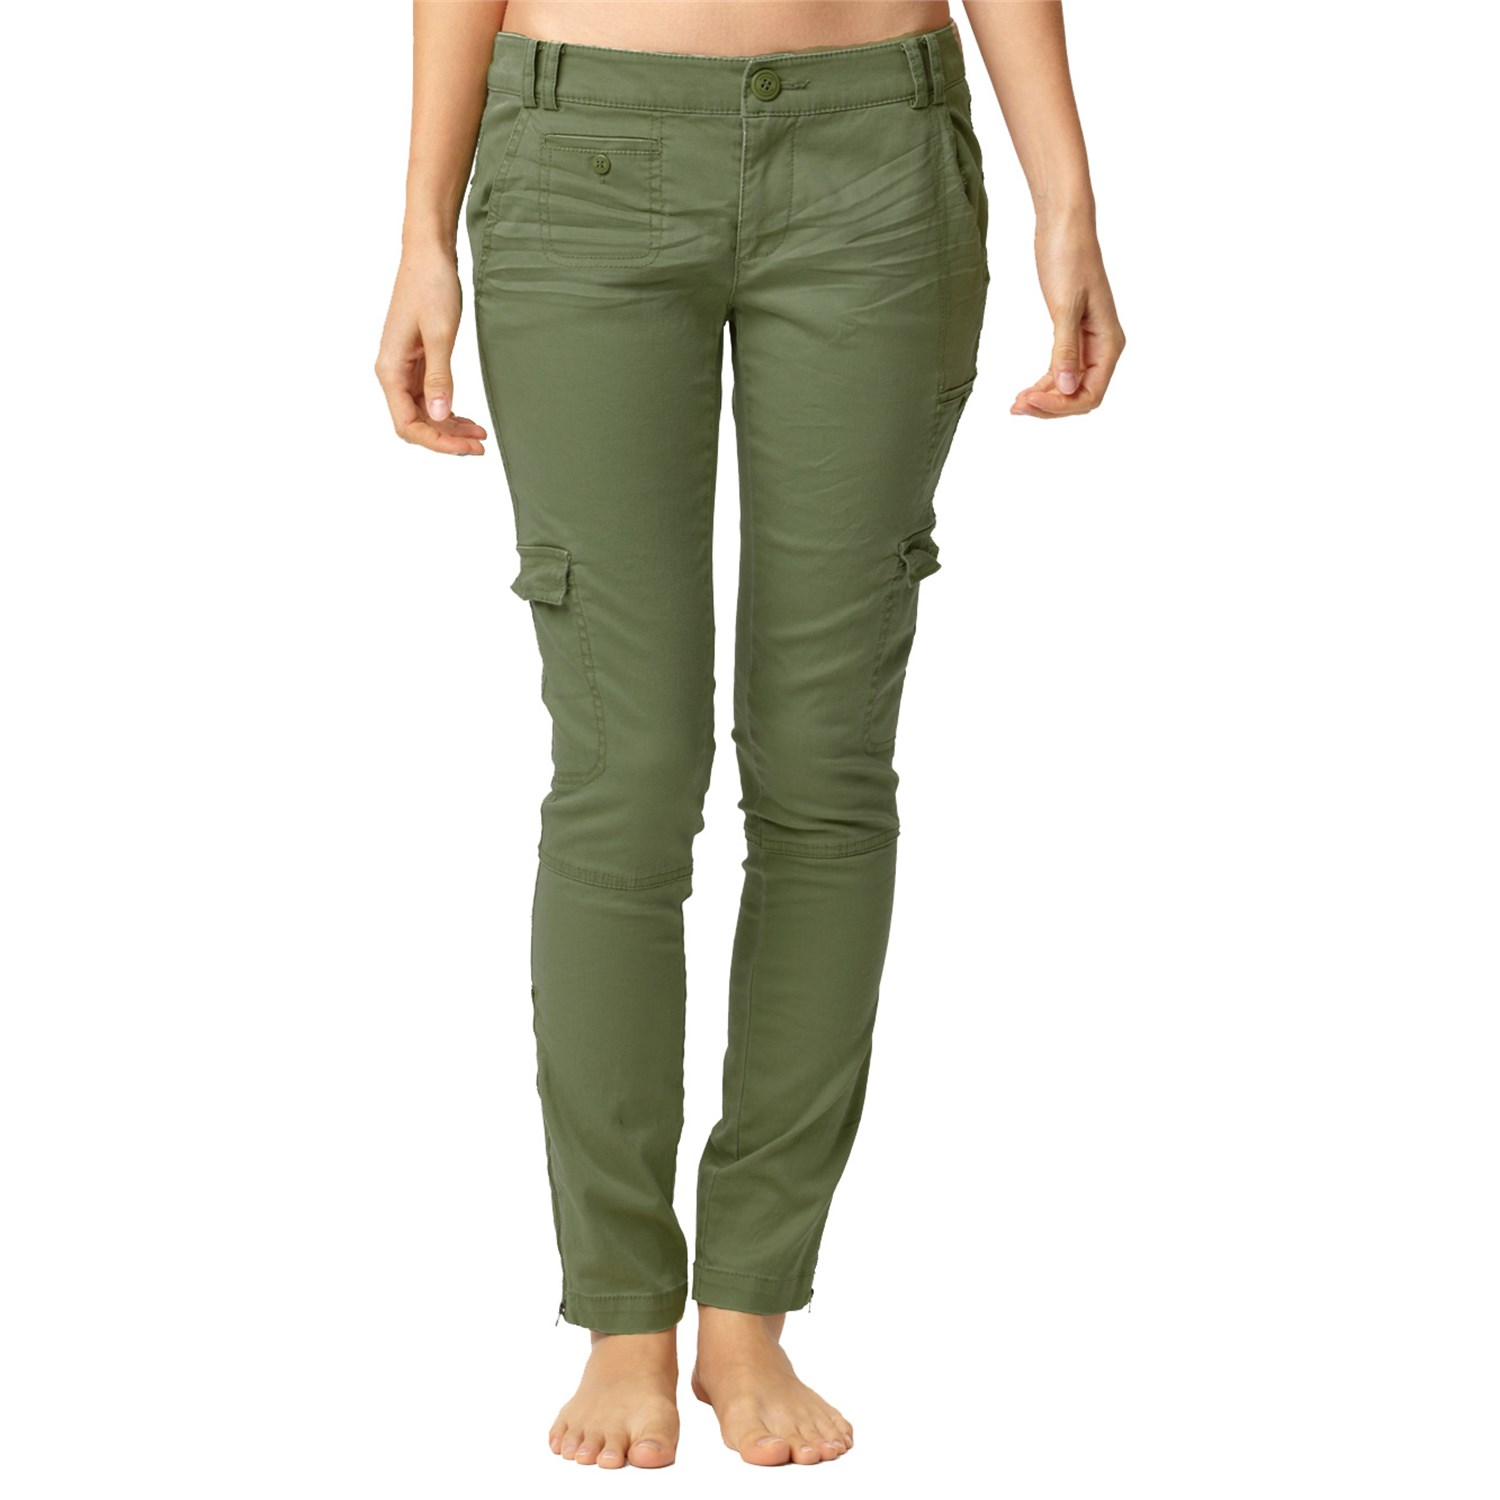 Unique Womens Legend Wash Curvy Stretch Pants  Cropped $6000  Womens Legend Wash Curvy Stretch Pants  Cropped $6000 $ Womens Myriad Jogger Cropped Cargo Pants $7000 $ Womens Legend Wash Curvy Stretch Pants